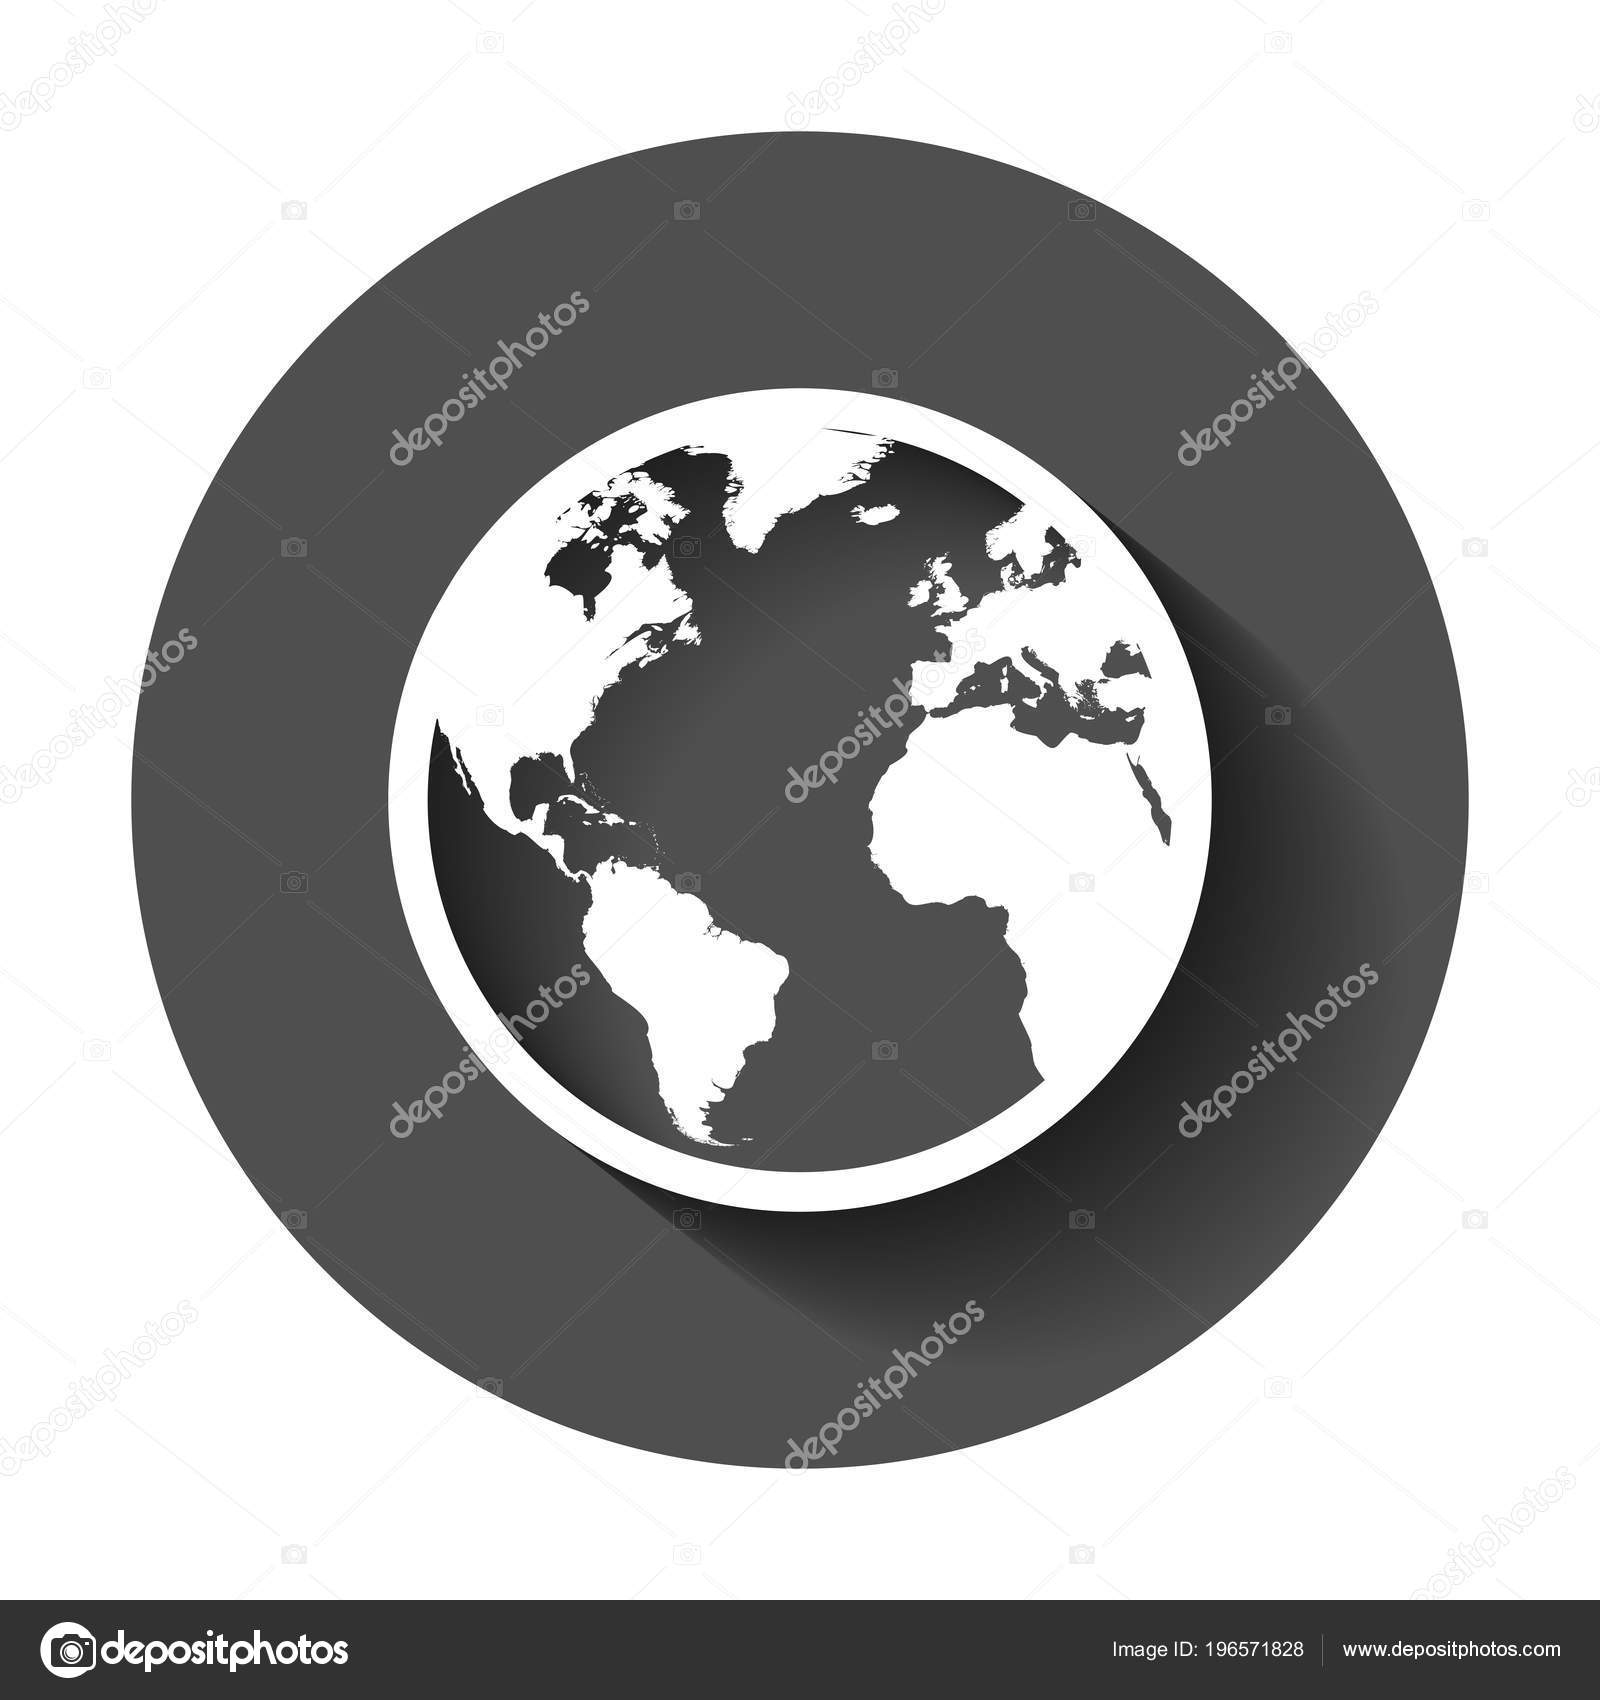 Globe world map vector icon earth flat vector illustration planet globe world map vector icon earth flat vector illustration planet stock vector gumiabroncs Images